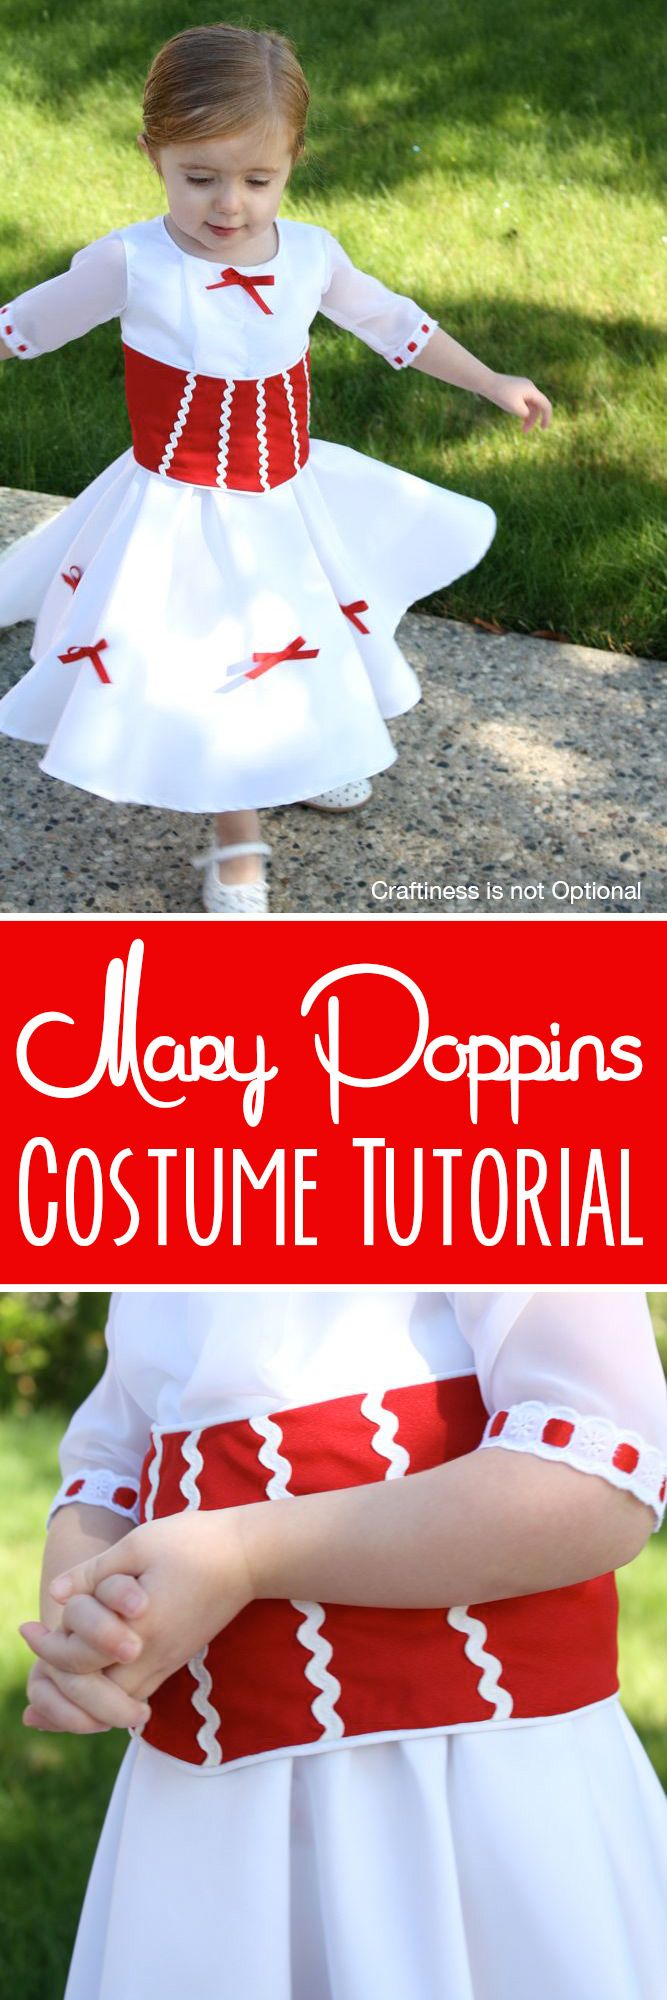 Make a Mary Poppins dress! tutorial